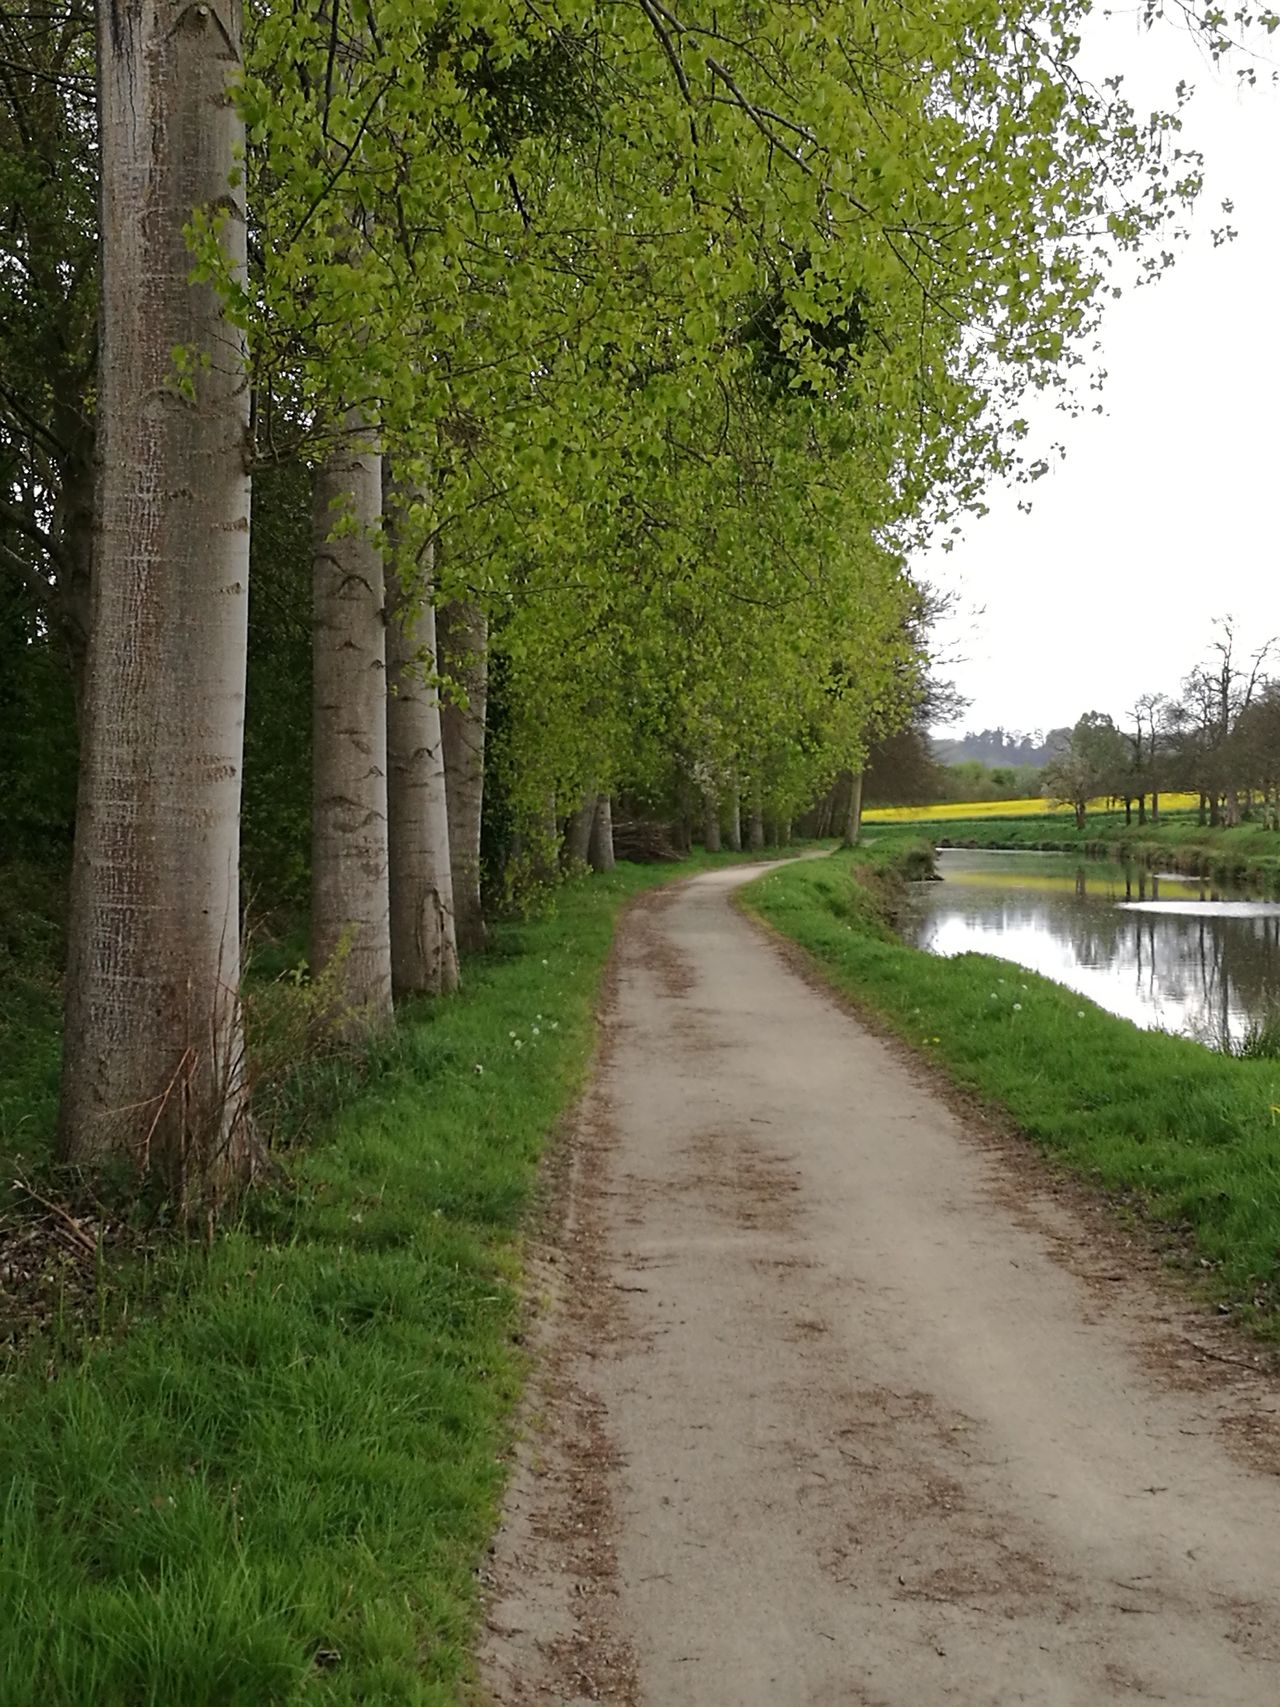 Beauty In Nature Grass Green Color Growth Landscape Nature Outdoors Path River Road Scenics Sky The Way Forward Tranquil Scene Tranquility Tree